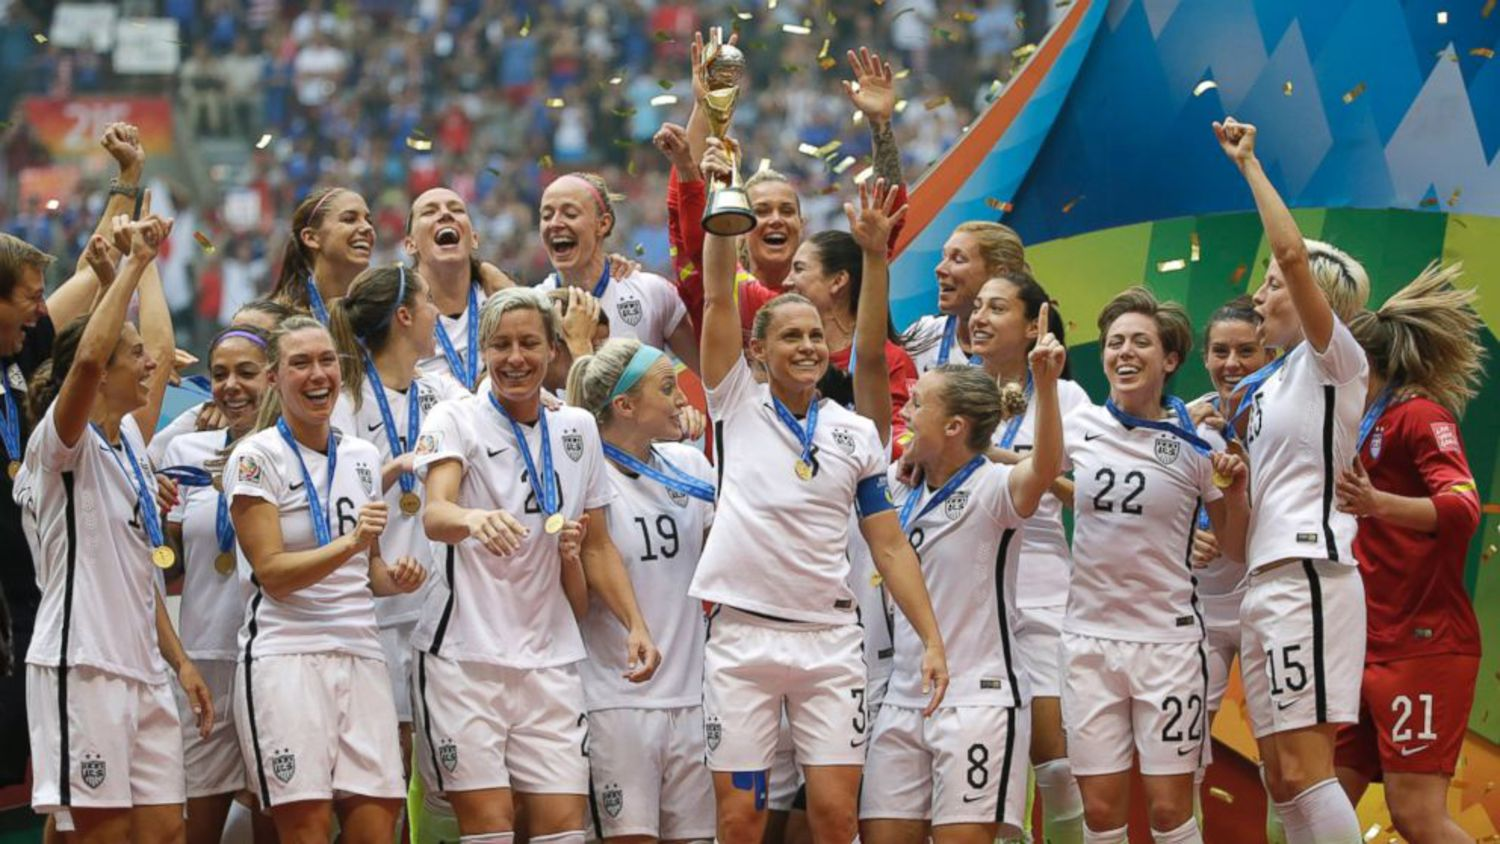 The United States Women's National Team celebrates with the trophy after they beat Japan in the FIFA Women's World Cup soccer championship, July 5, 2015, in Vancouver, Canada.